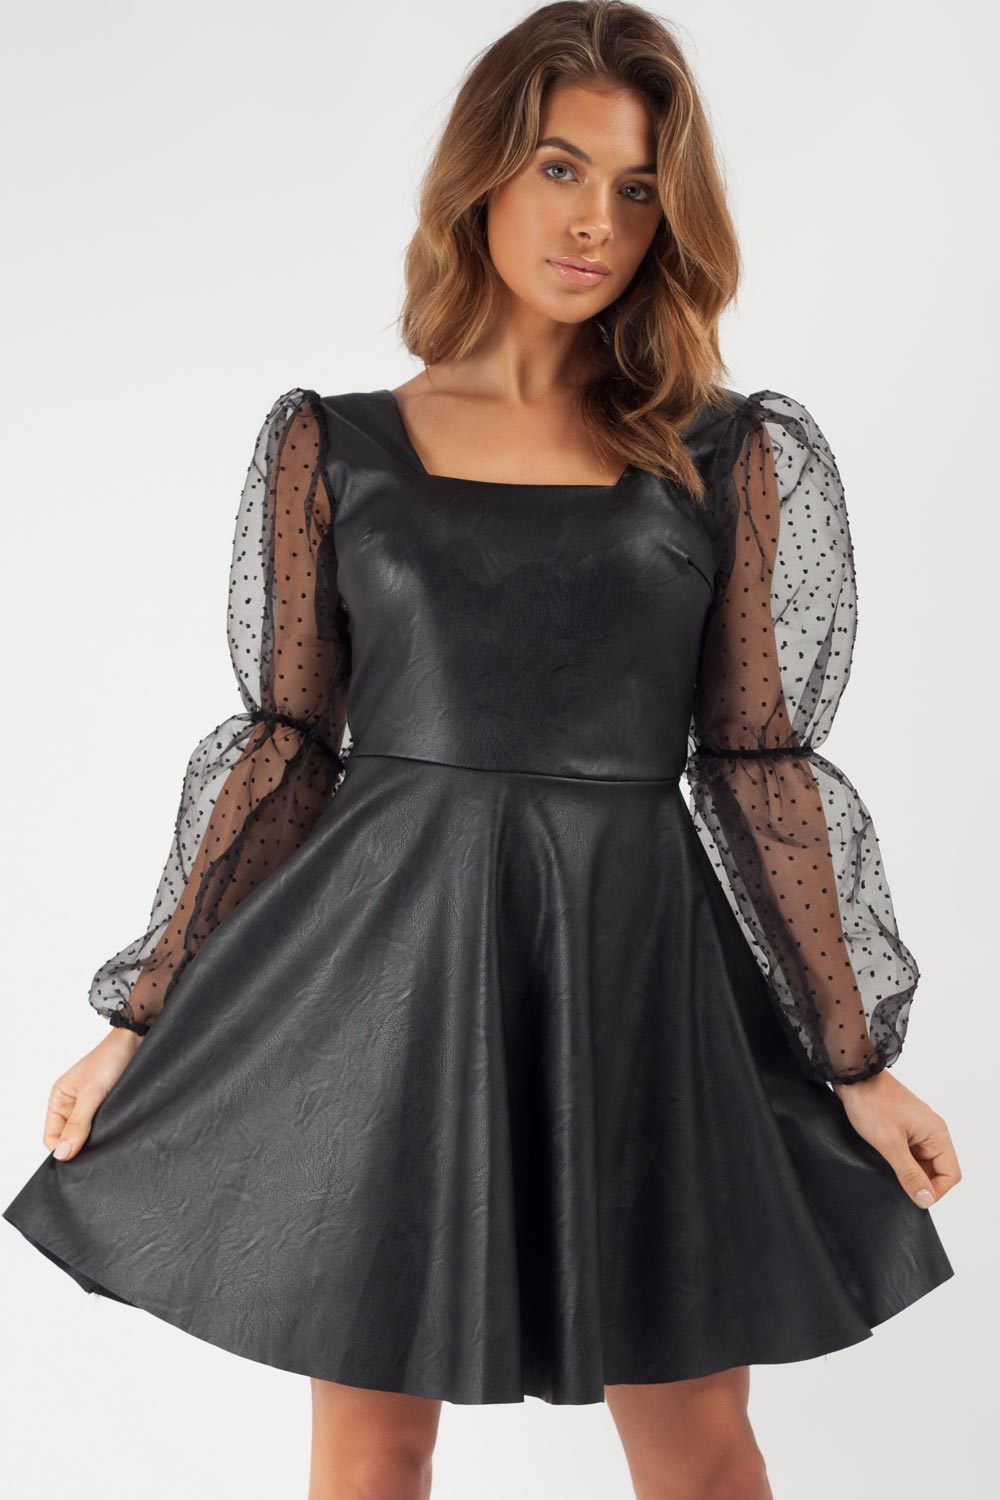 faux leather skater dress uk